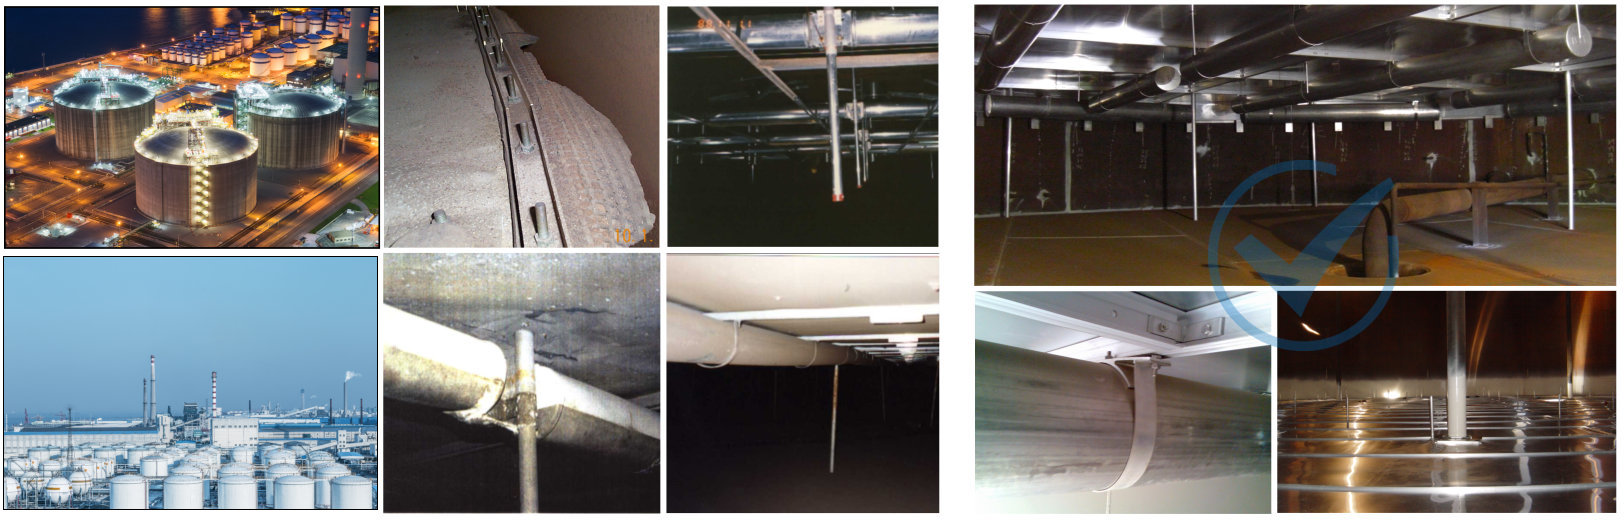 Internal Floating Roofs Inspection, Maintenance and Repair in accordance with EEMUA PUBLICATION 159